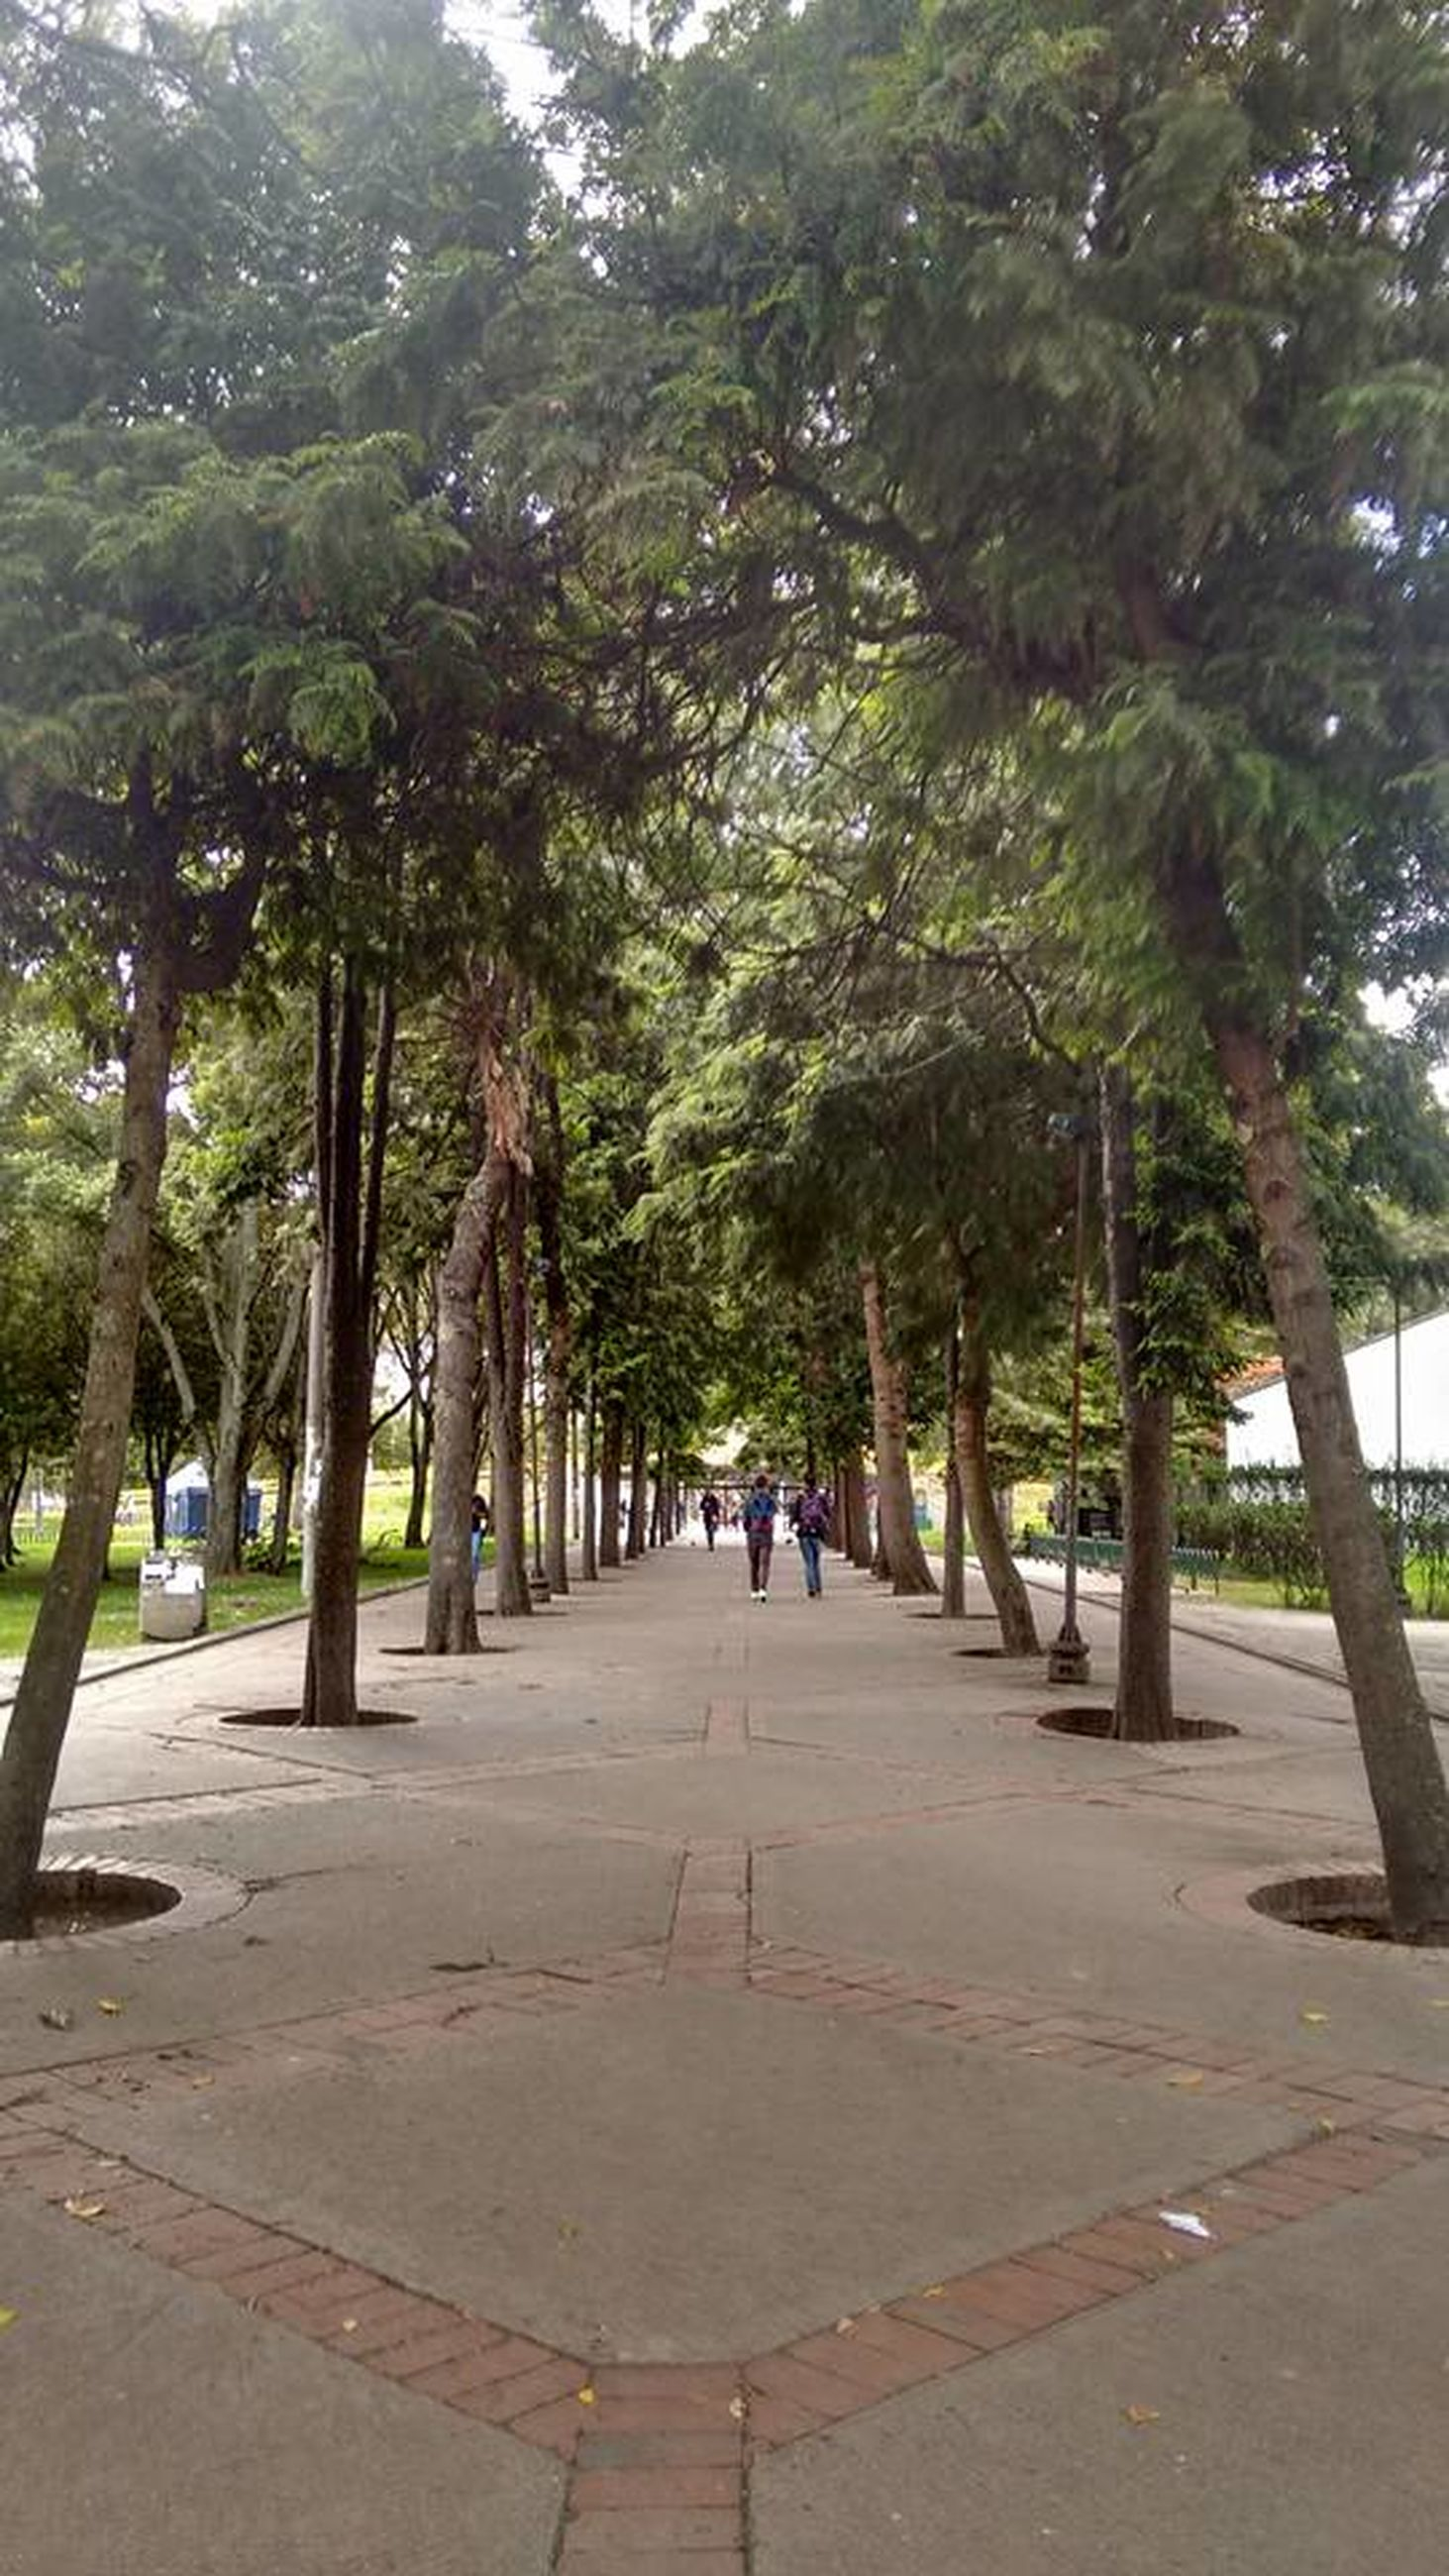 tree, treelined, growth, tree trunk, park - man made space, the way forward, green color, branch, day, tourist, footpath, nature, tranquility, vacations, tourism, travel destinations, walkway, tranquil scene, person, pedestrian walkway, outdoors, scenics, diminishing perspective